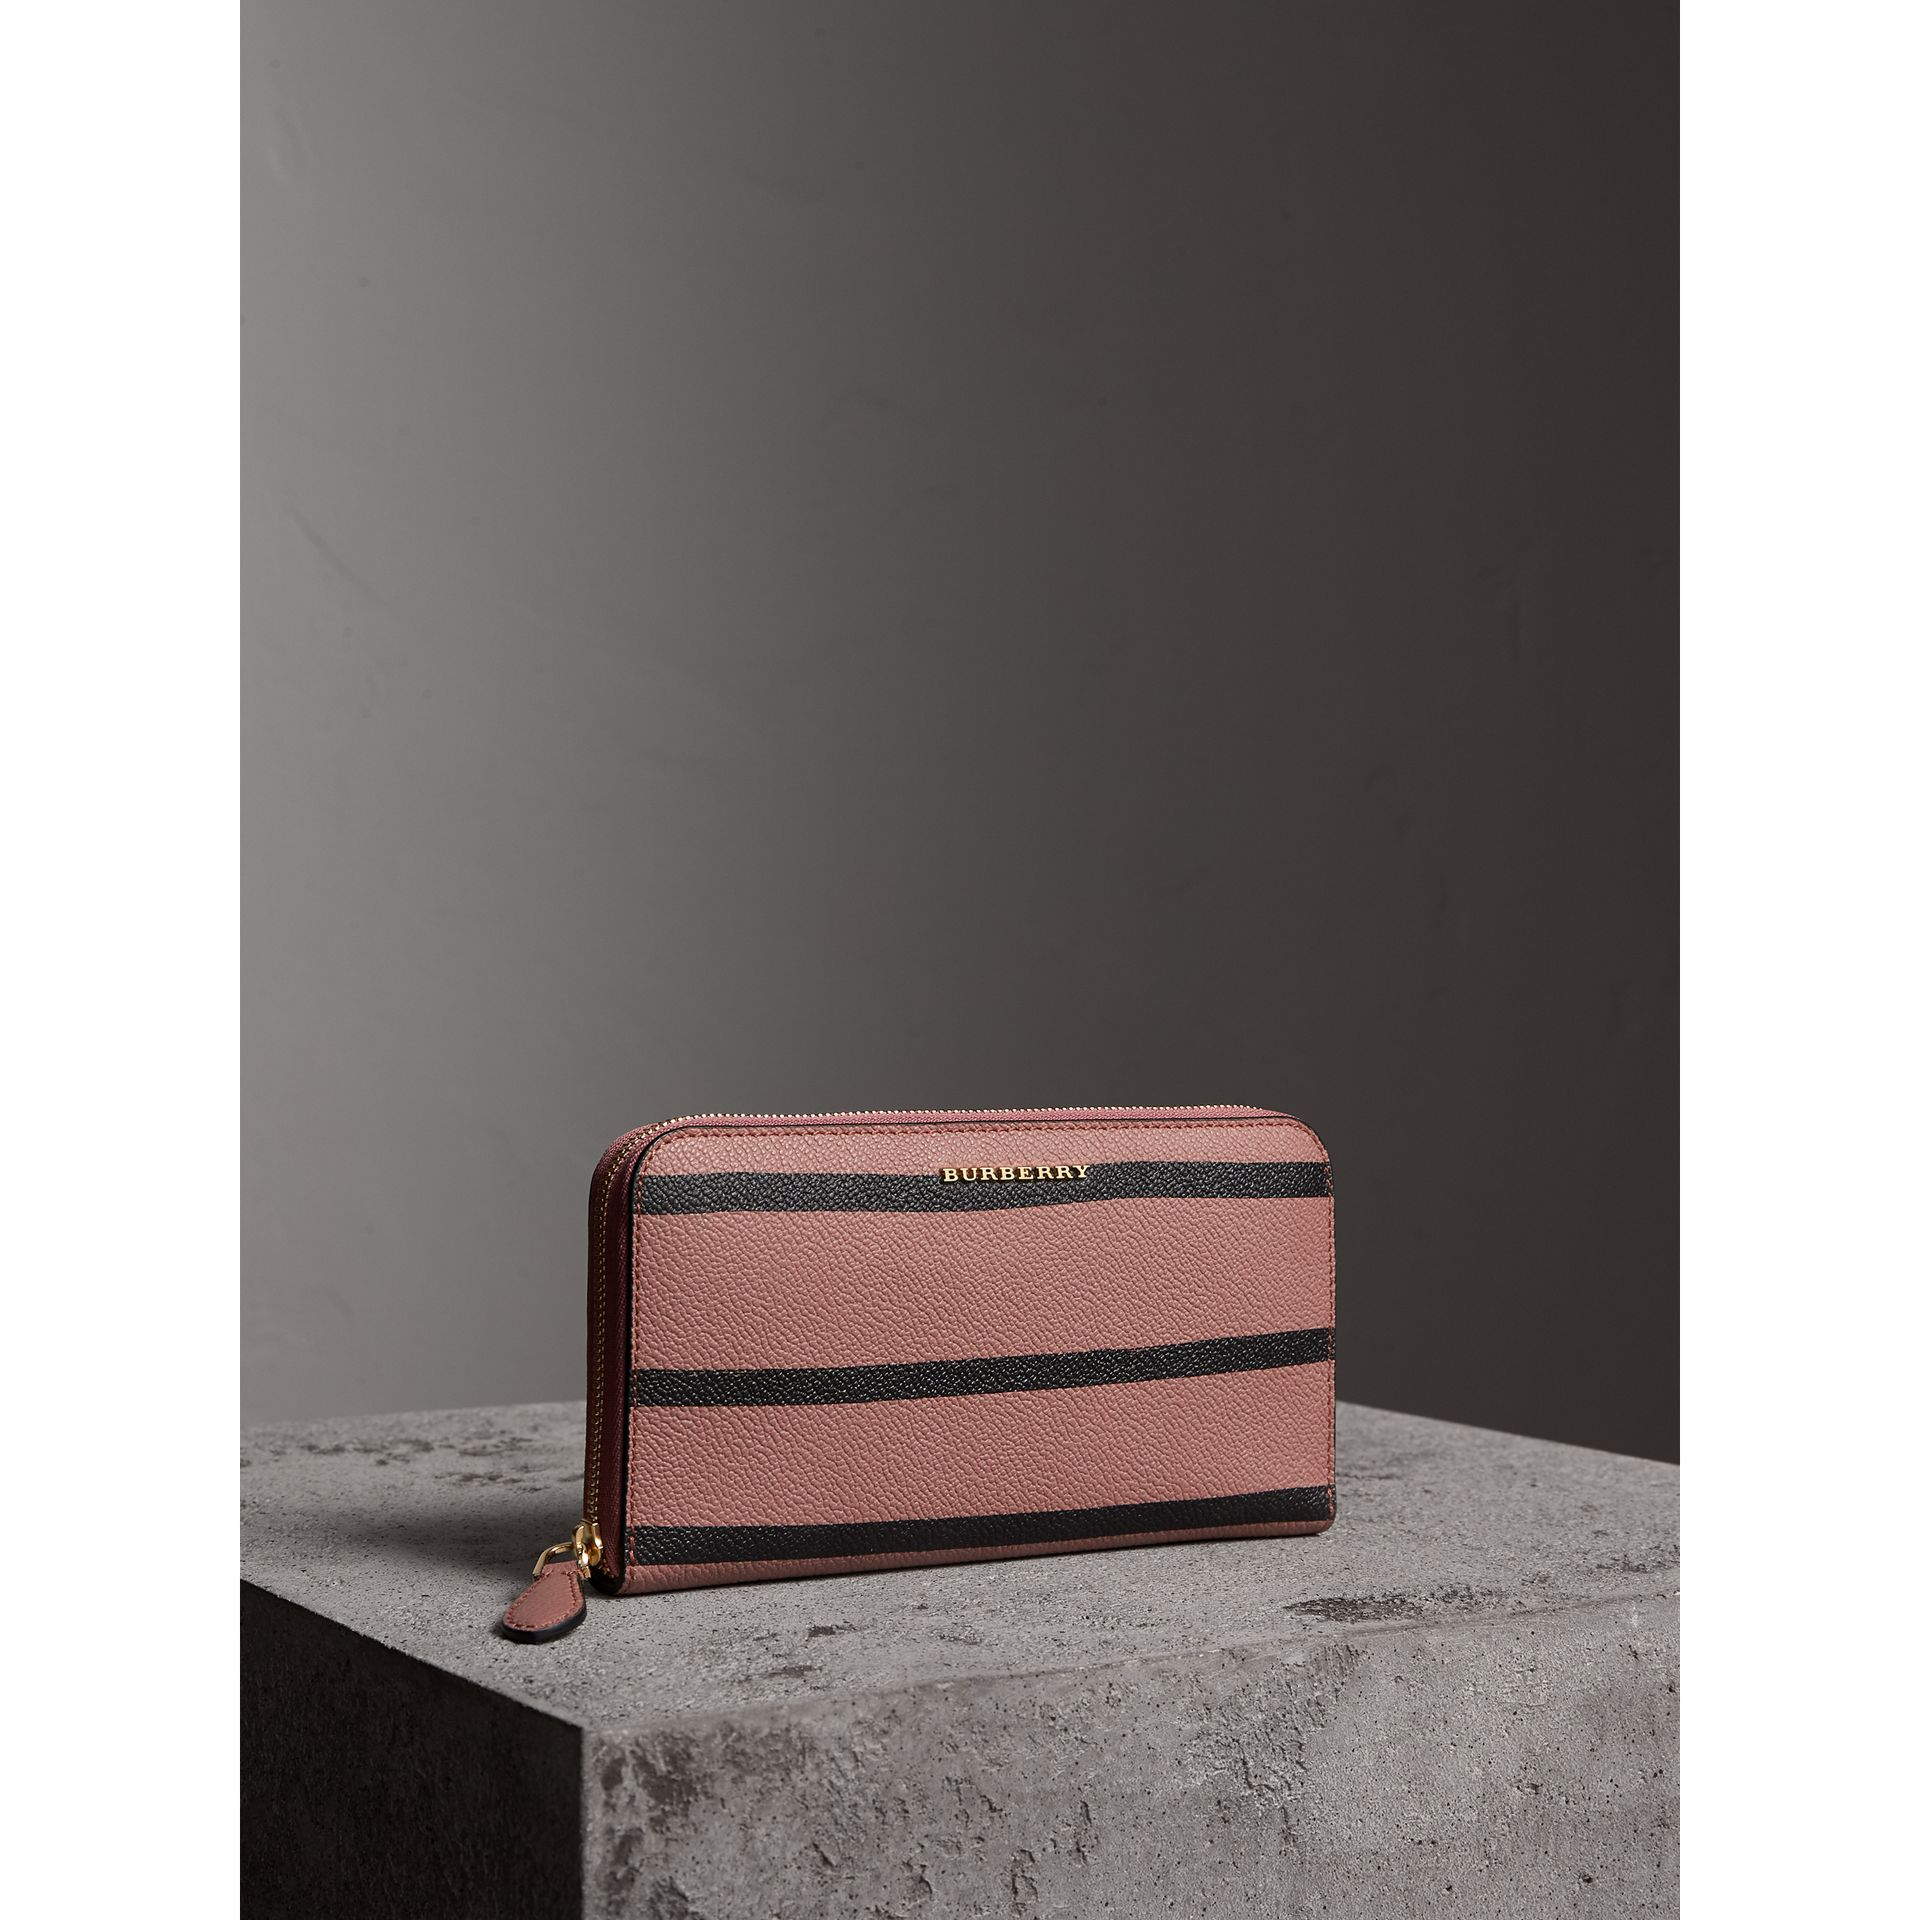 Trompe L'oeil Print Leather Ziparound Wallet in Dusty Pink - Women | Burberry - gallery image 1